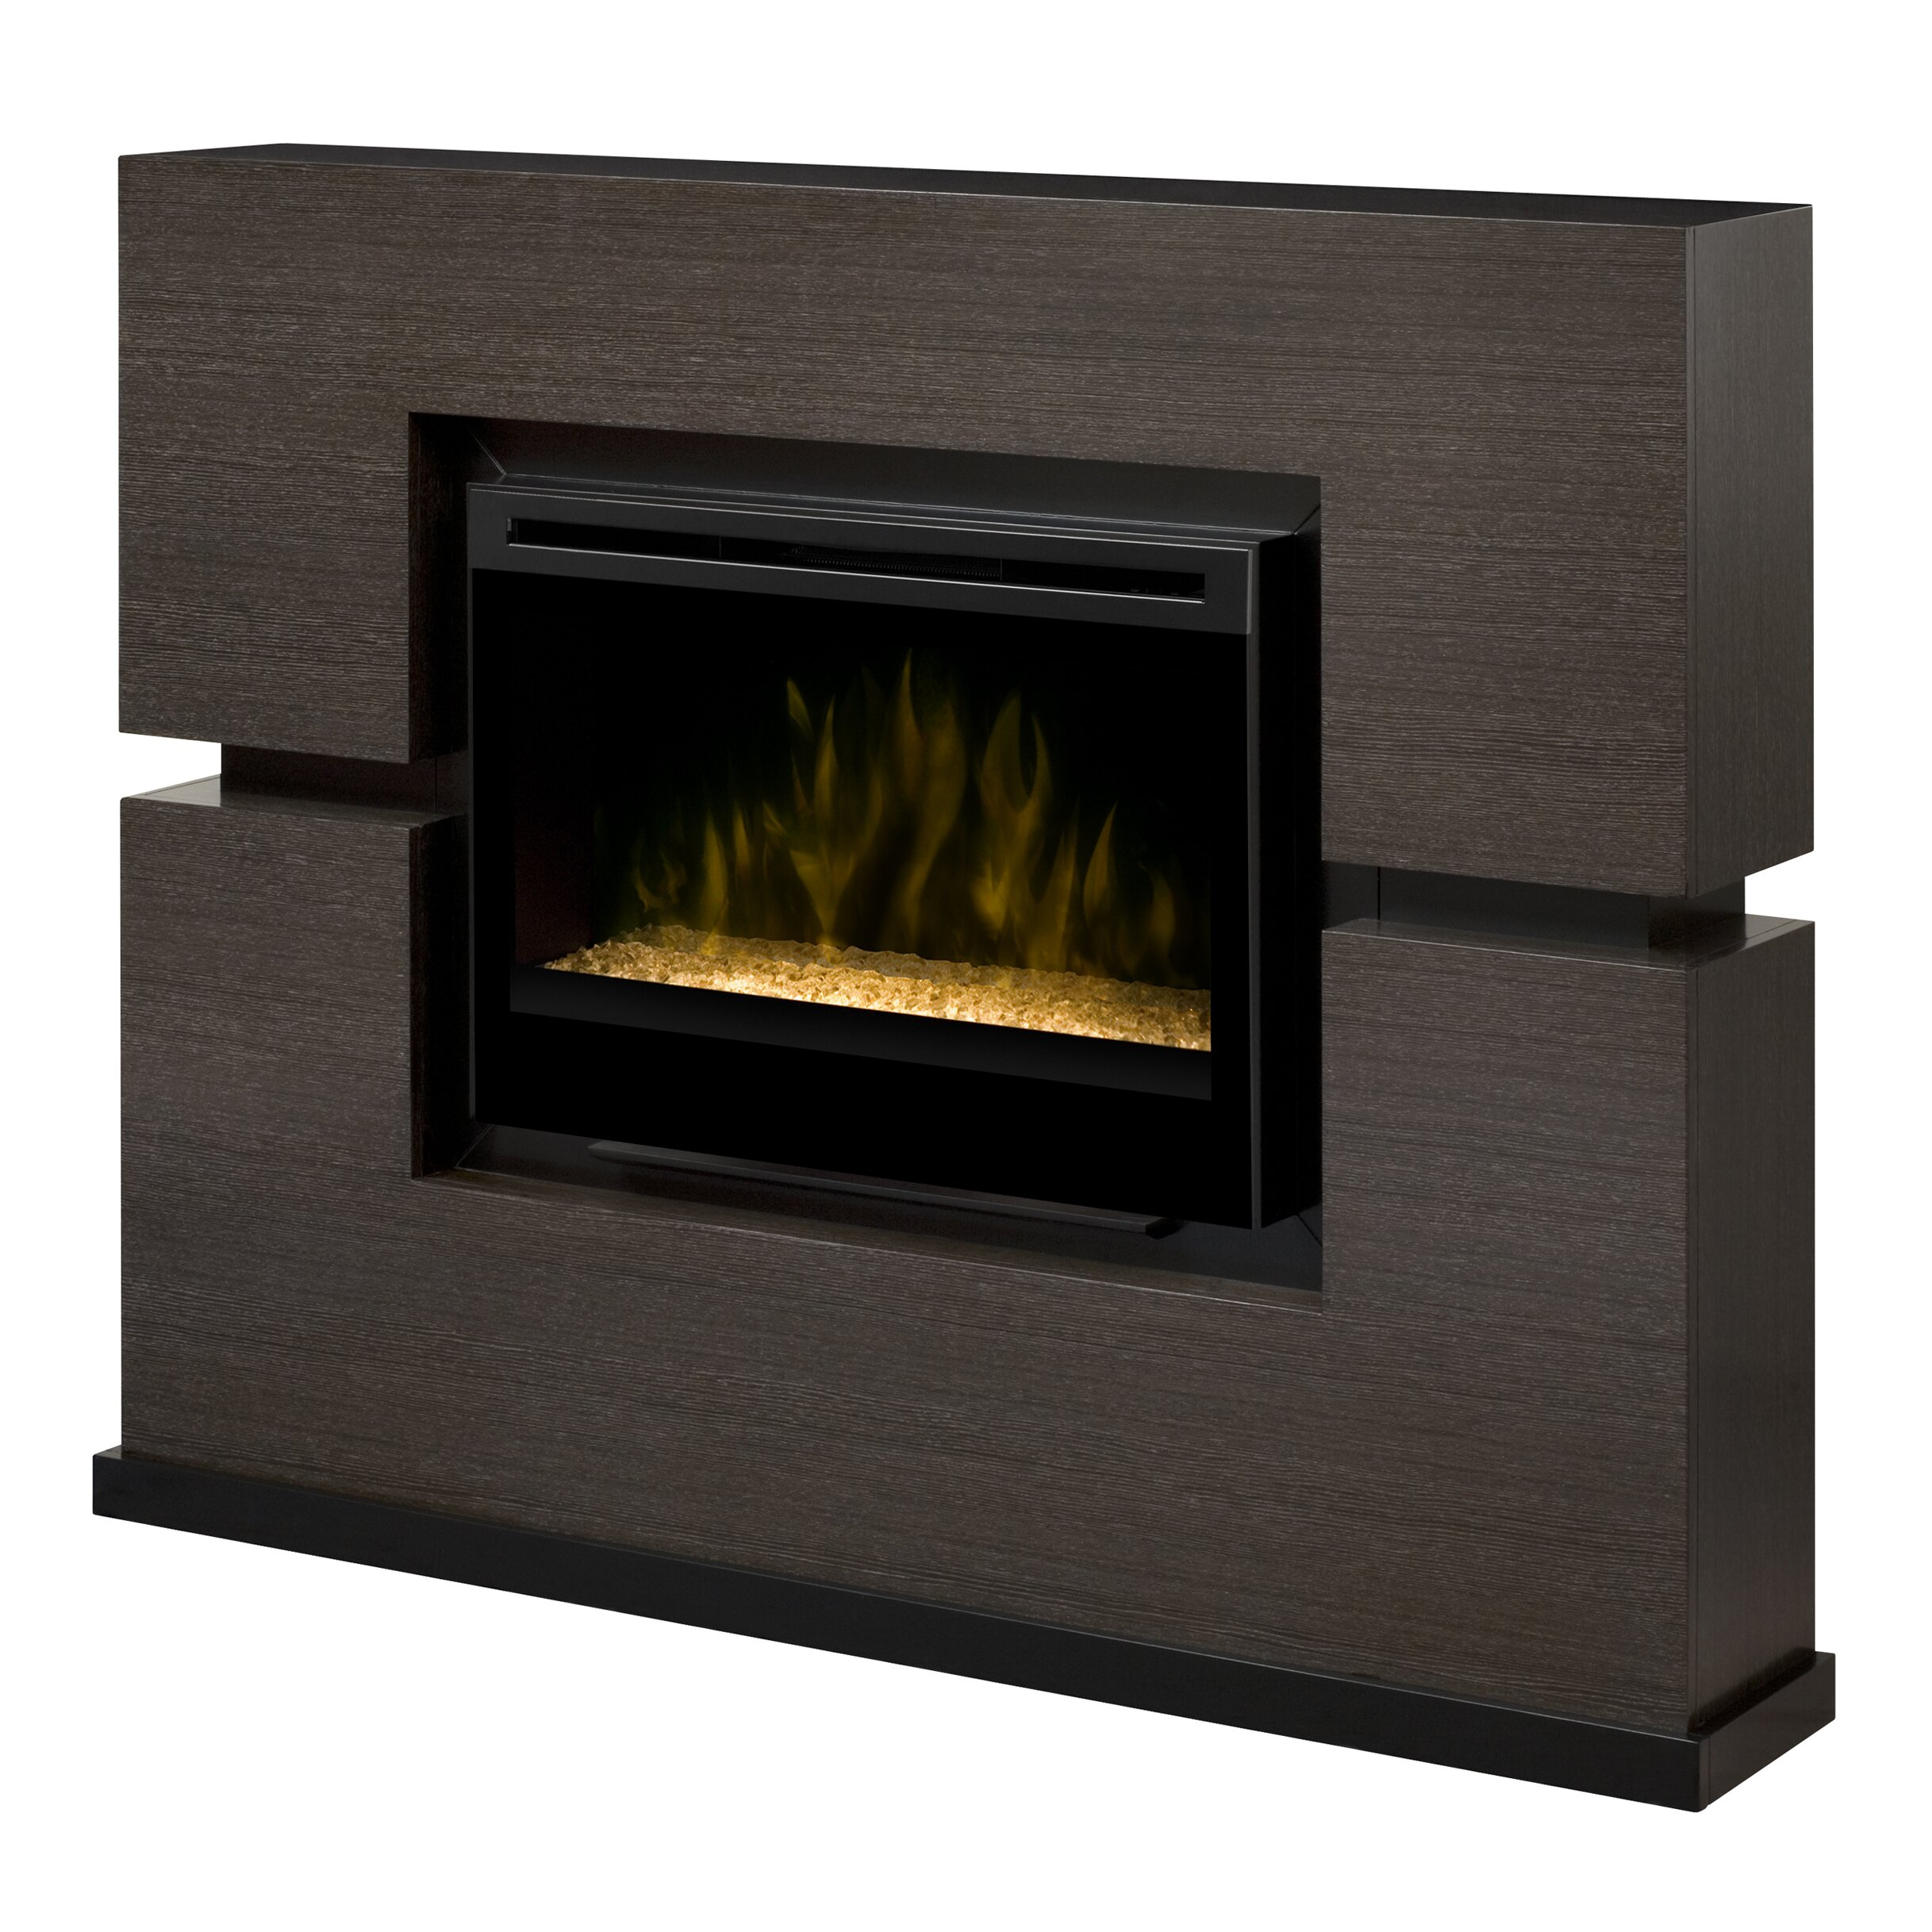 Dimplex Linwood Mantel Electric Ember Bed Fireplace ...